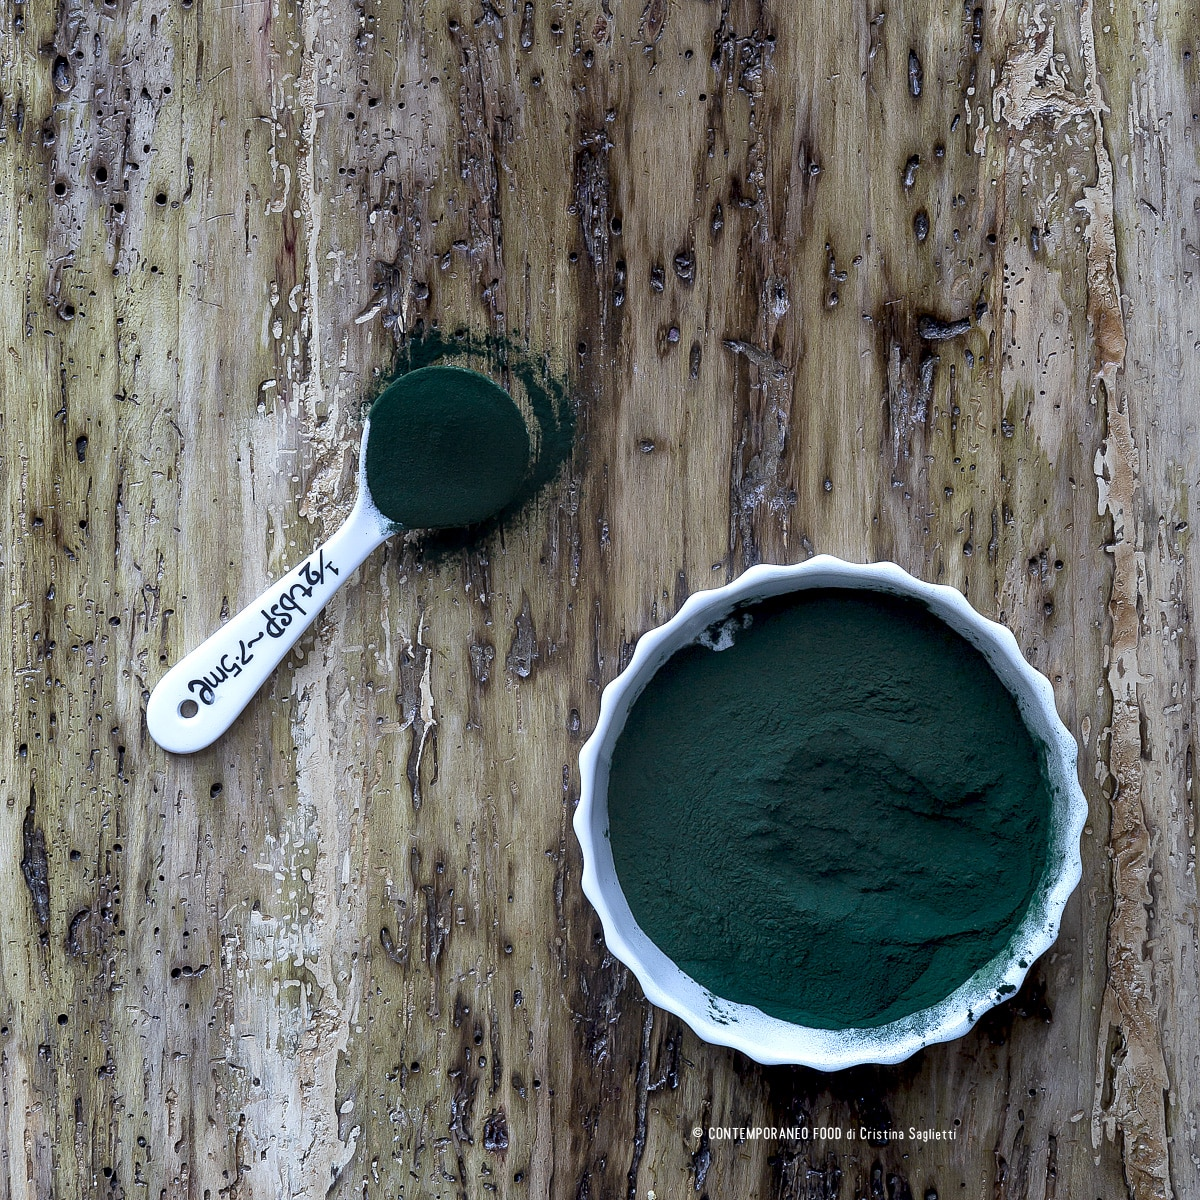 spirulina-proprietà-e-benefici-speciale-materia-prima-superfood-contemporaneo-food